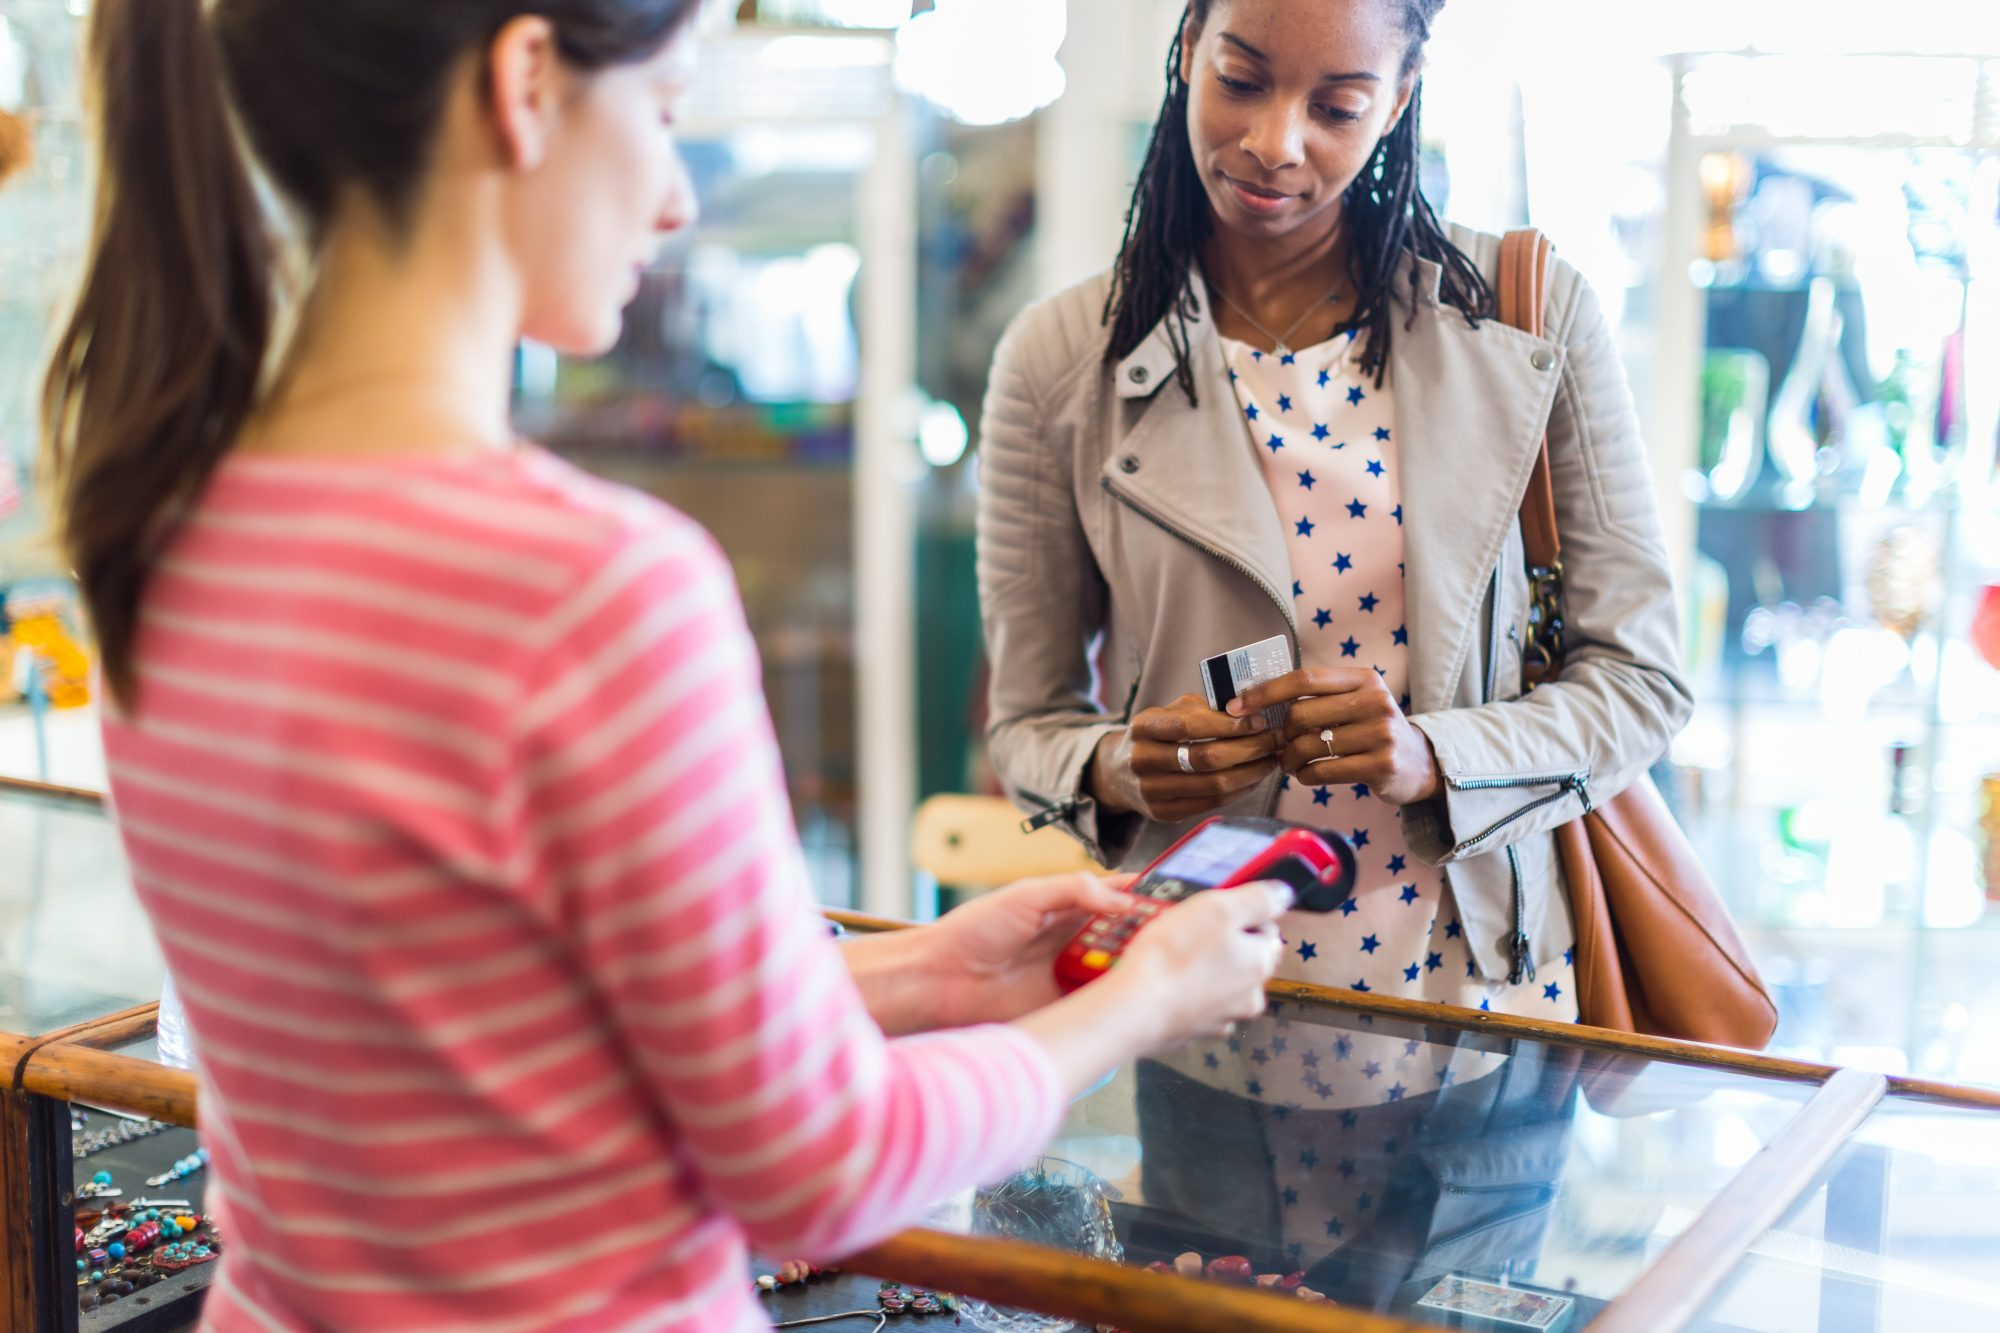 7 Tips to Avoid Credit Card Debt Shopping for Holiday Gifts